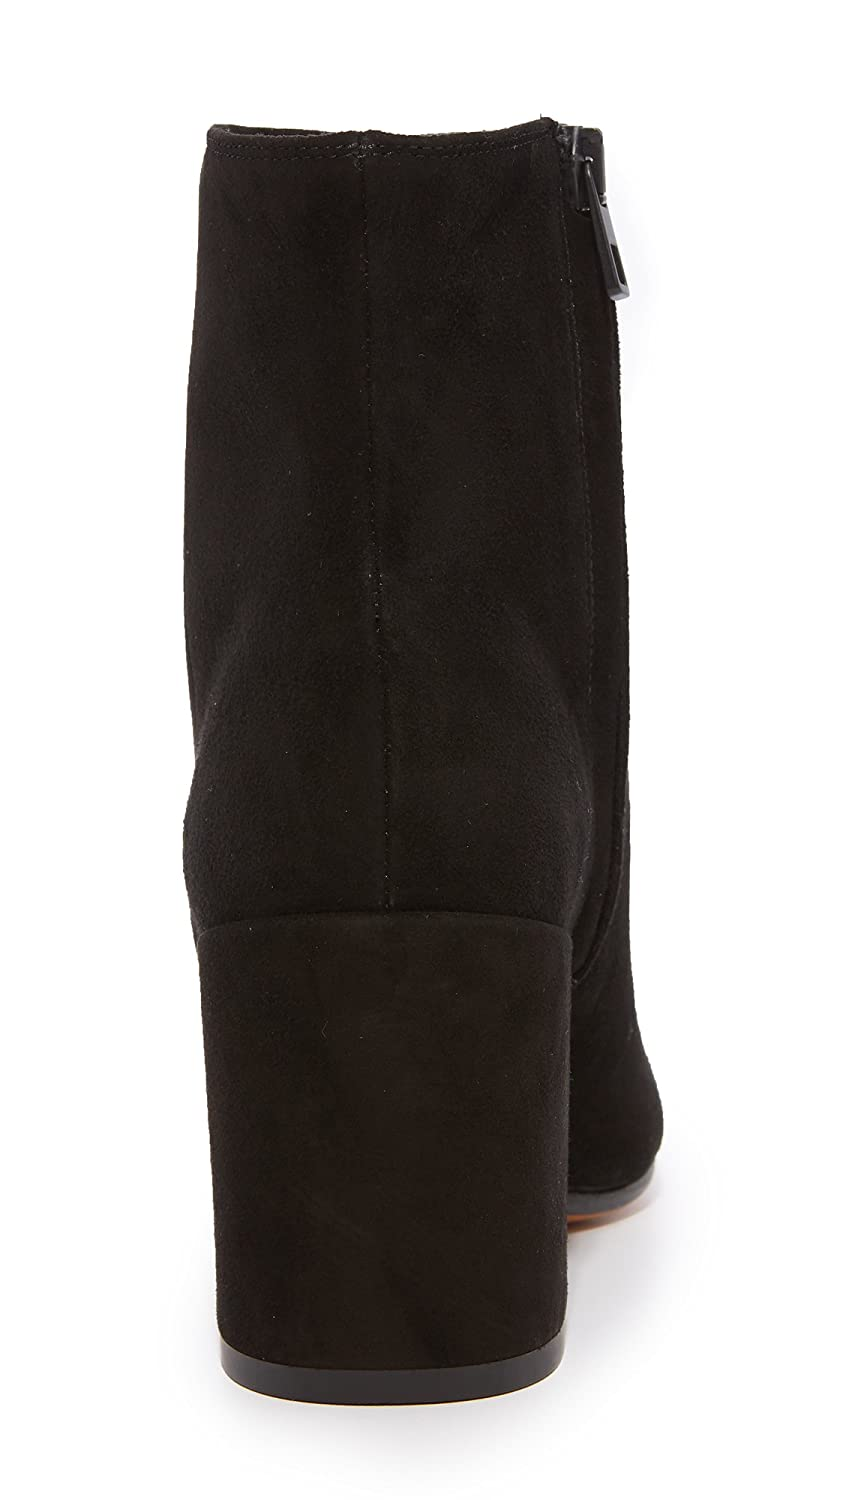 Vince Women's Highbury Fashion Boot B071HNWB5C 5 B(M) US|Black